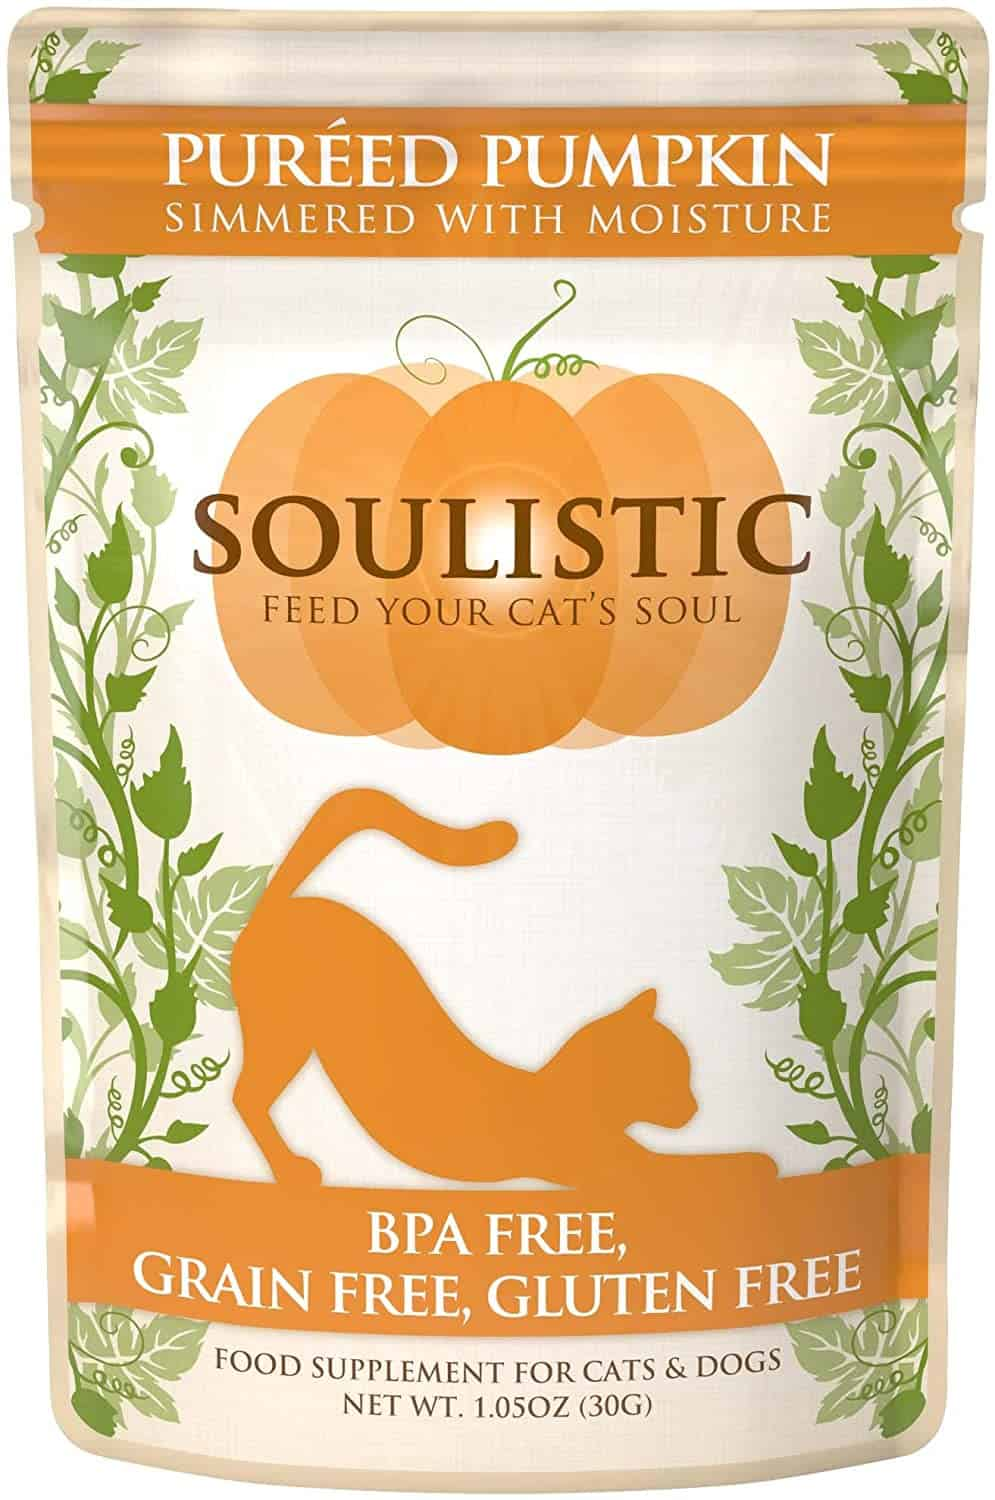 Soulistic Cat Food Review 2020: The Top Choice For Picky Kitties! 7